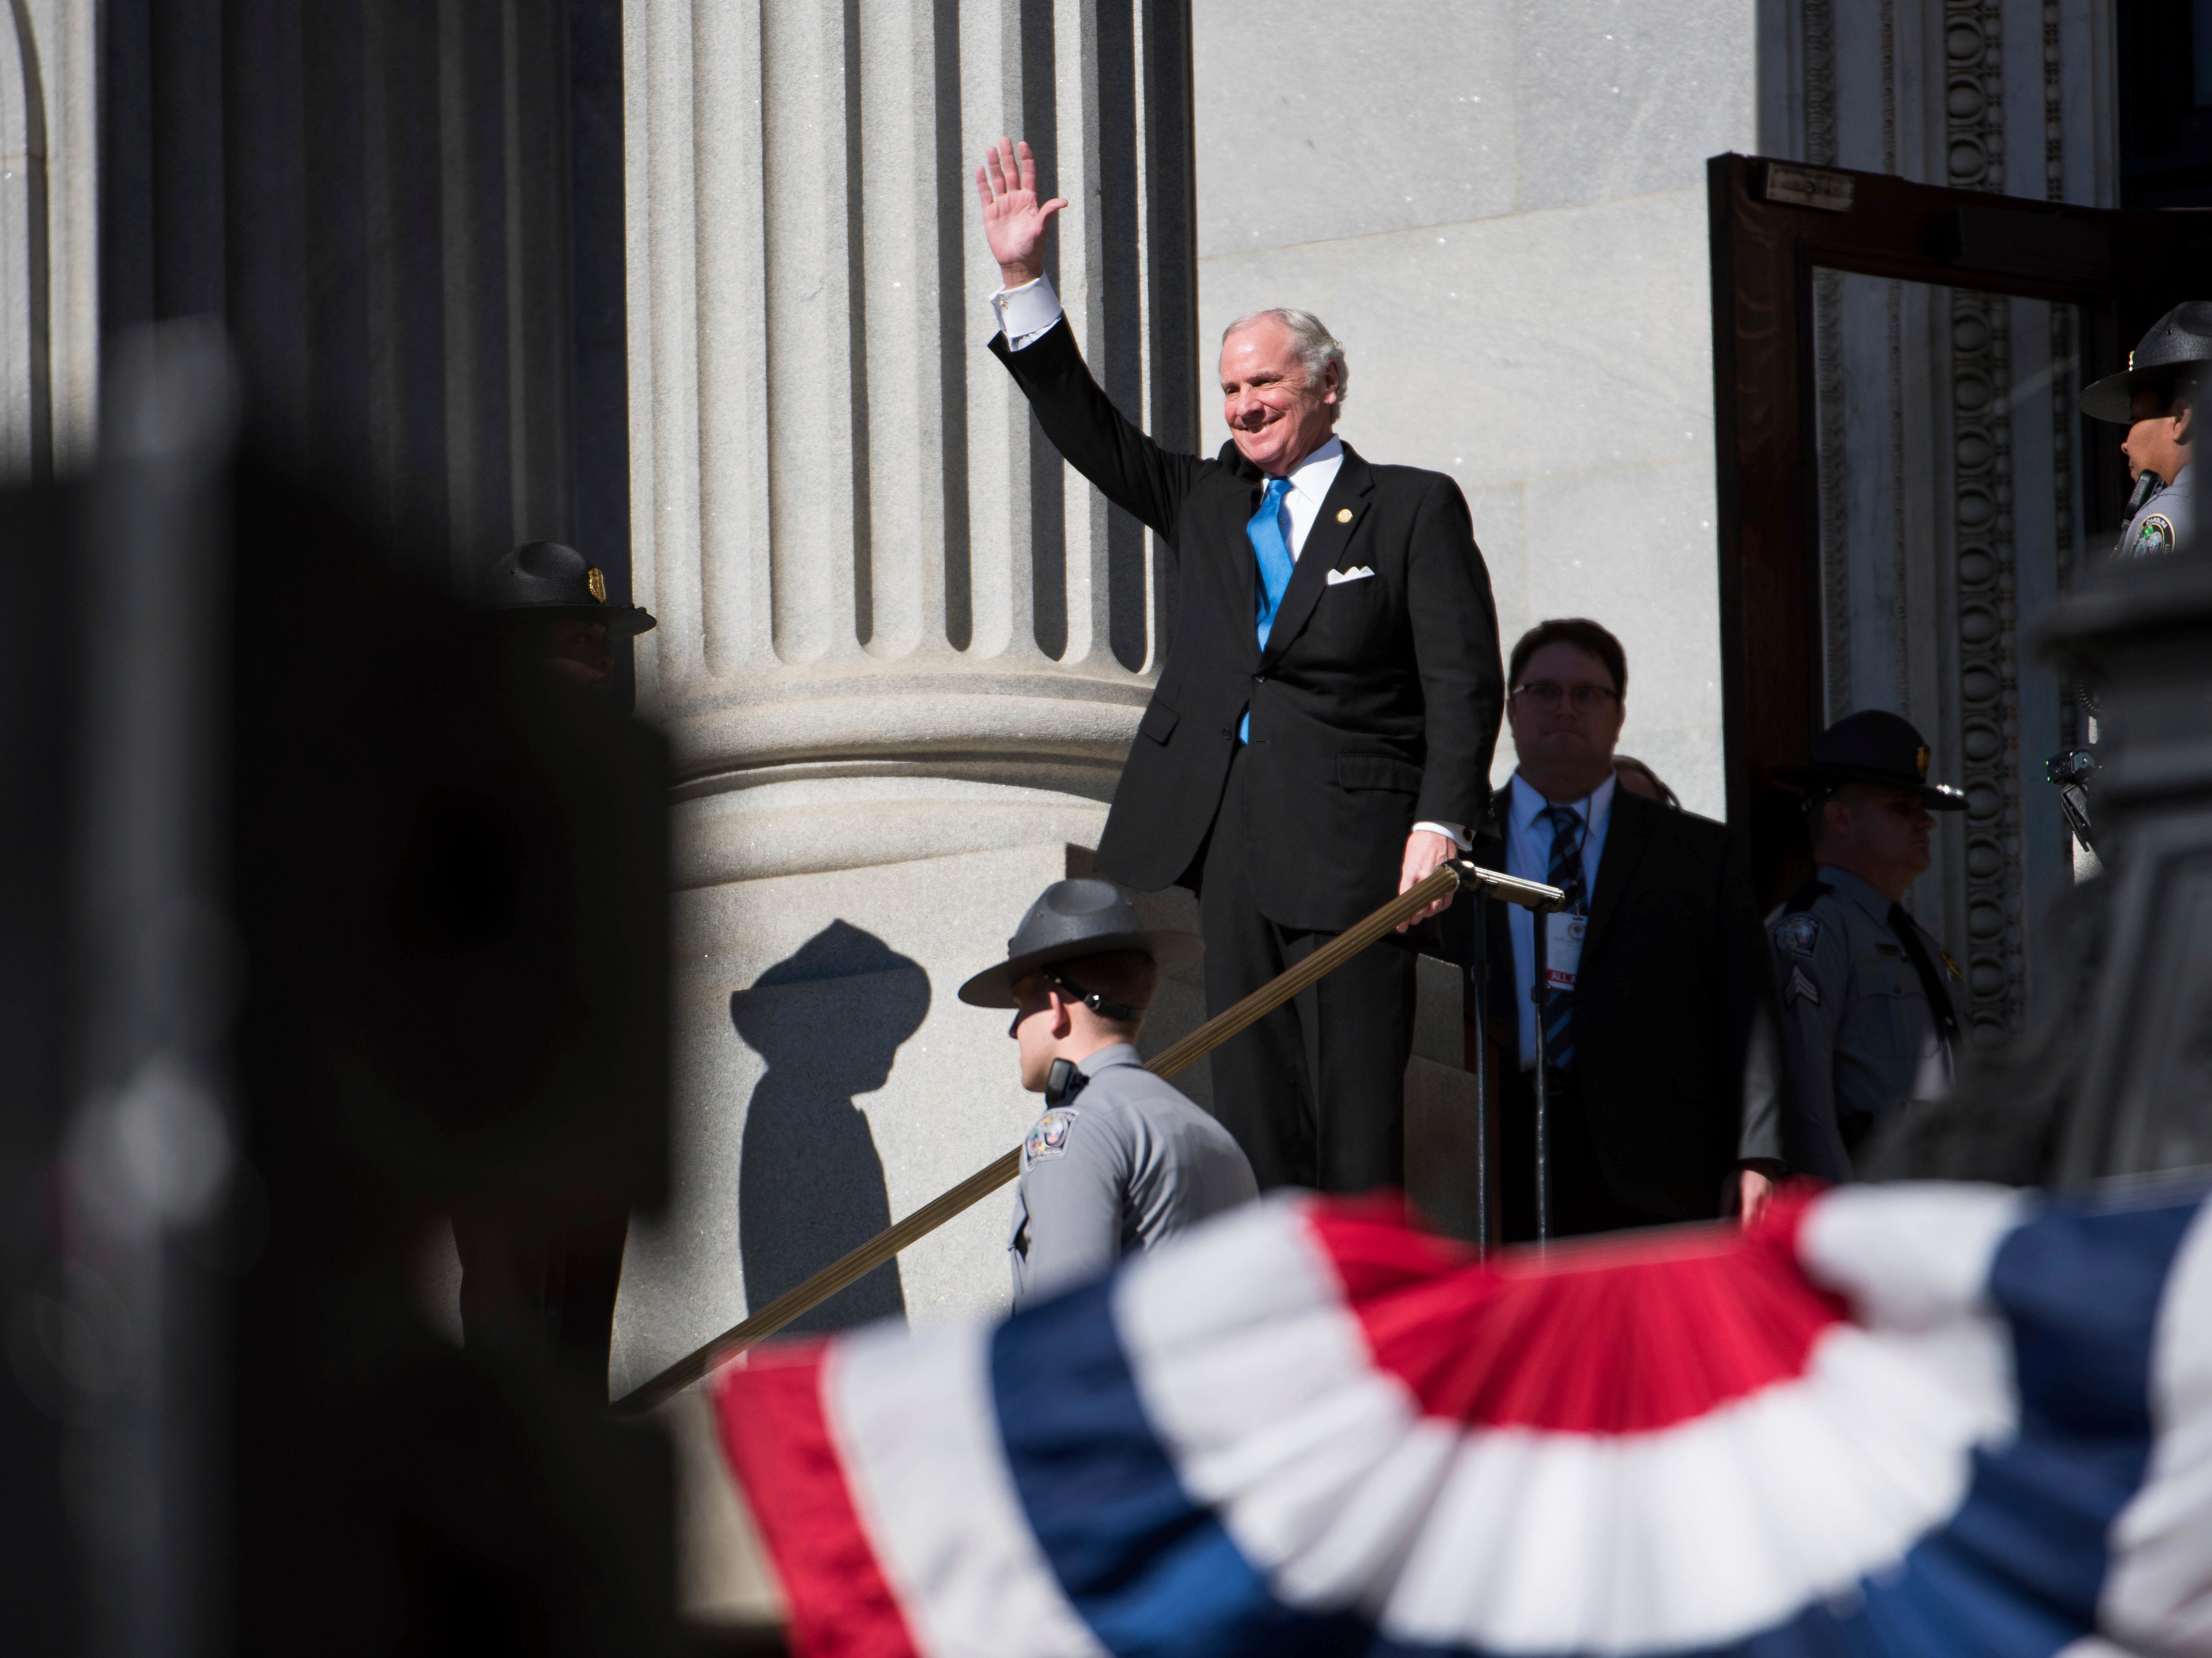 South Carolina Governor Henry McMaster waves to the crowd during his inauguration ceremony at the South Carolina Statehouse Wednesday, Jan. 9, 2019, in Columbia, S.C. McMaster defeated Democratic state Rep. James Smith in the Nov. 6 election. (AP Photo/Sean Rayford)